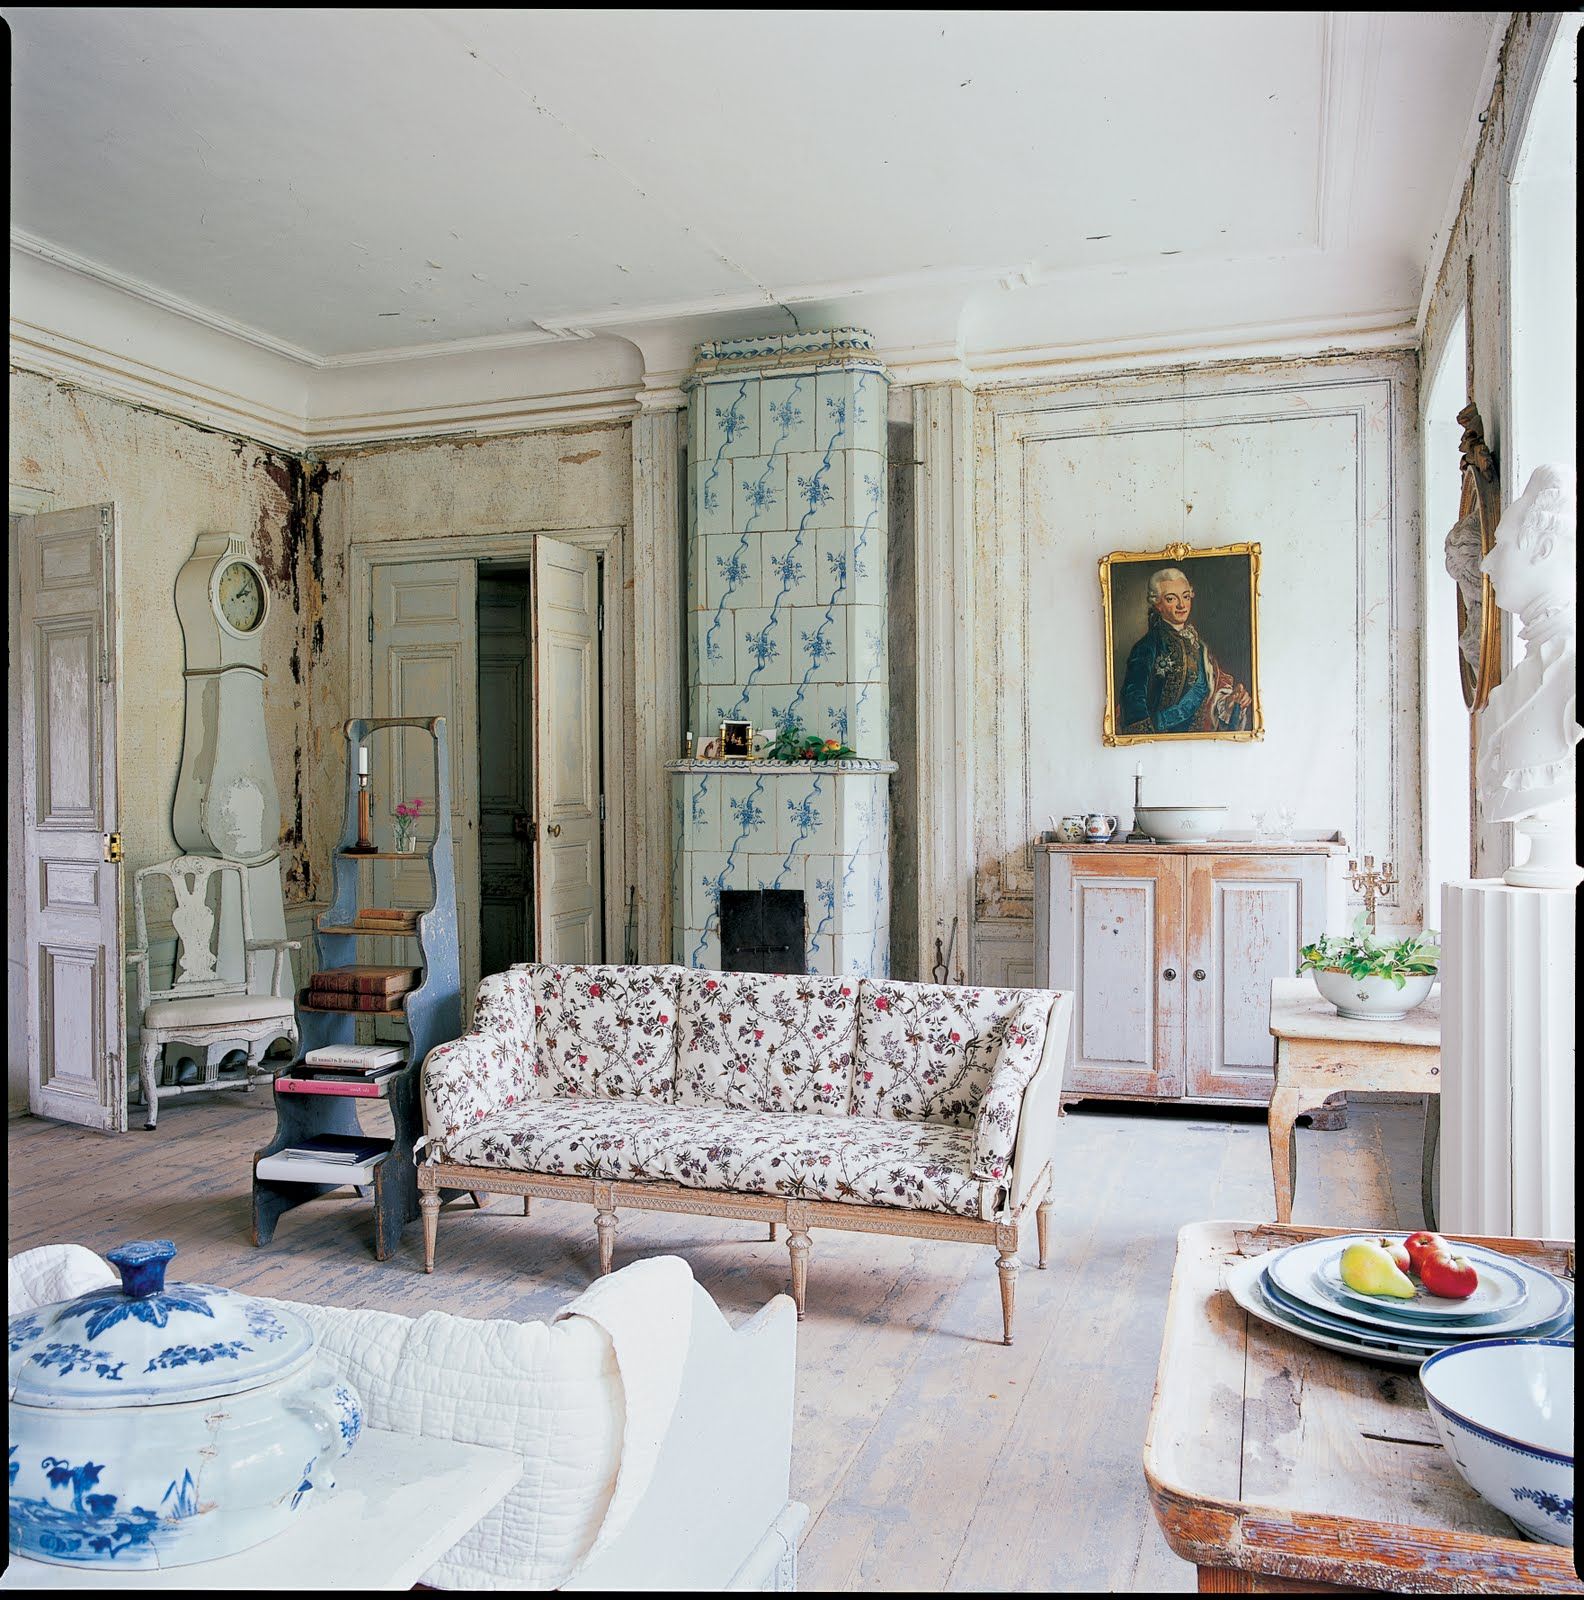 Swedish Interiors By Eleish Van Breems: Lars Bolander's